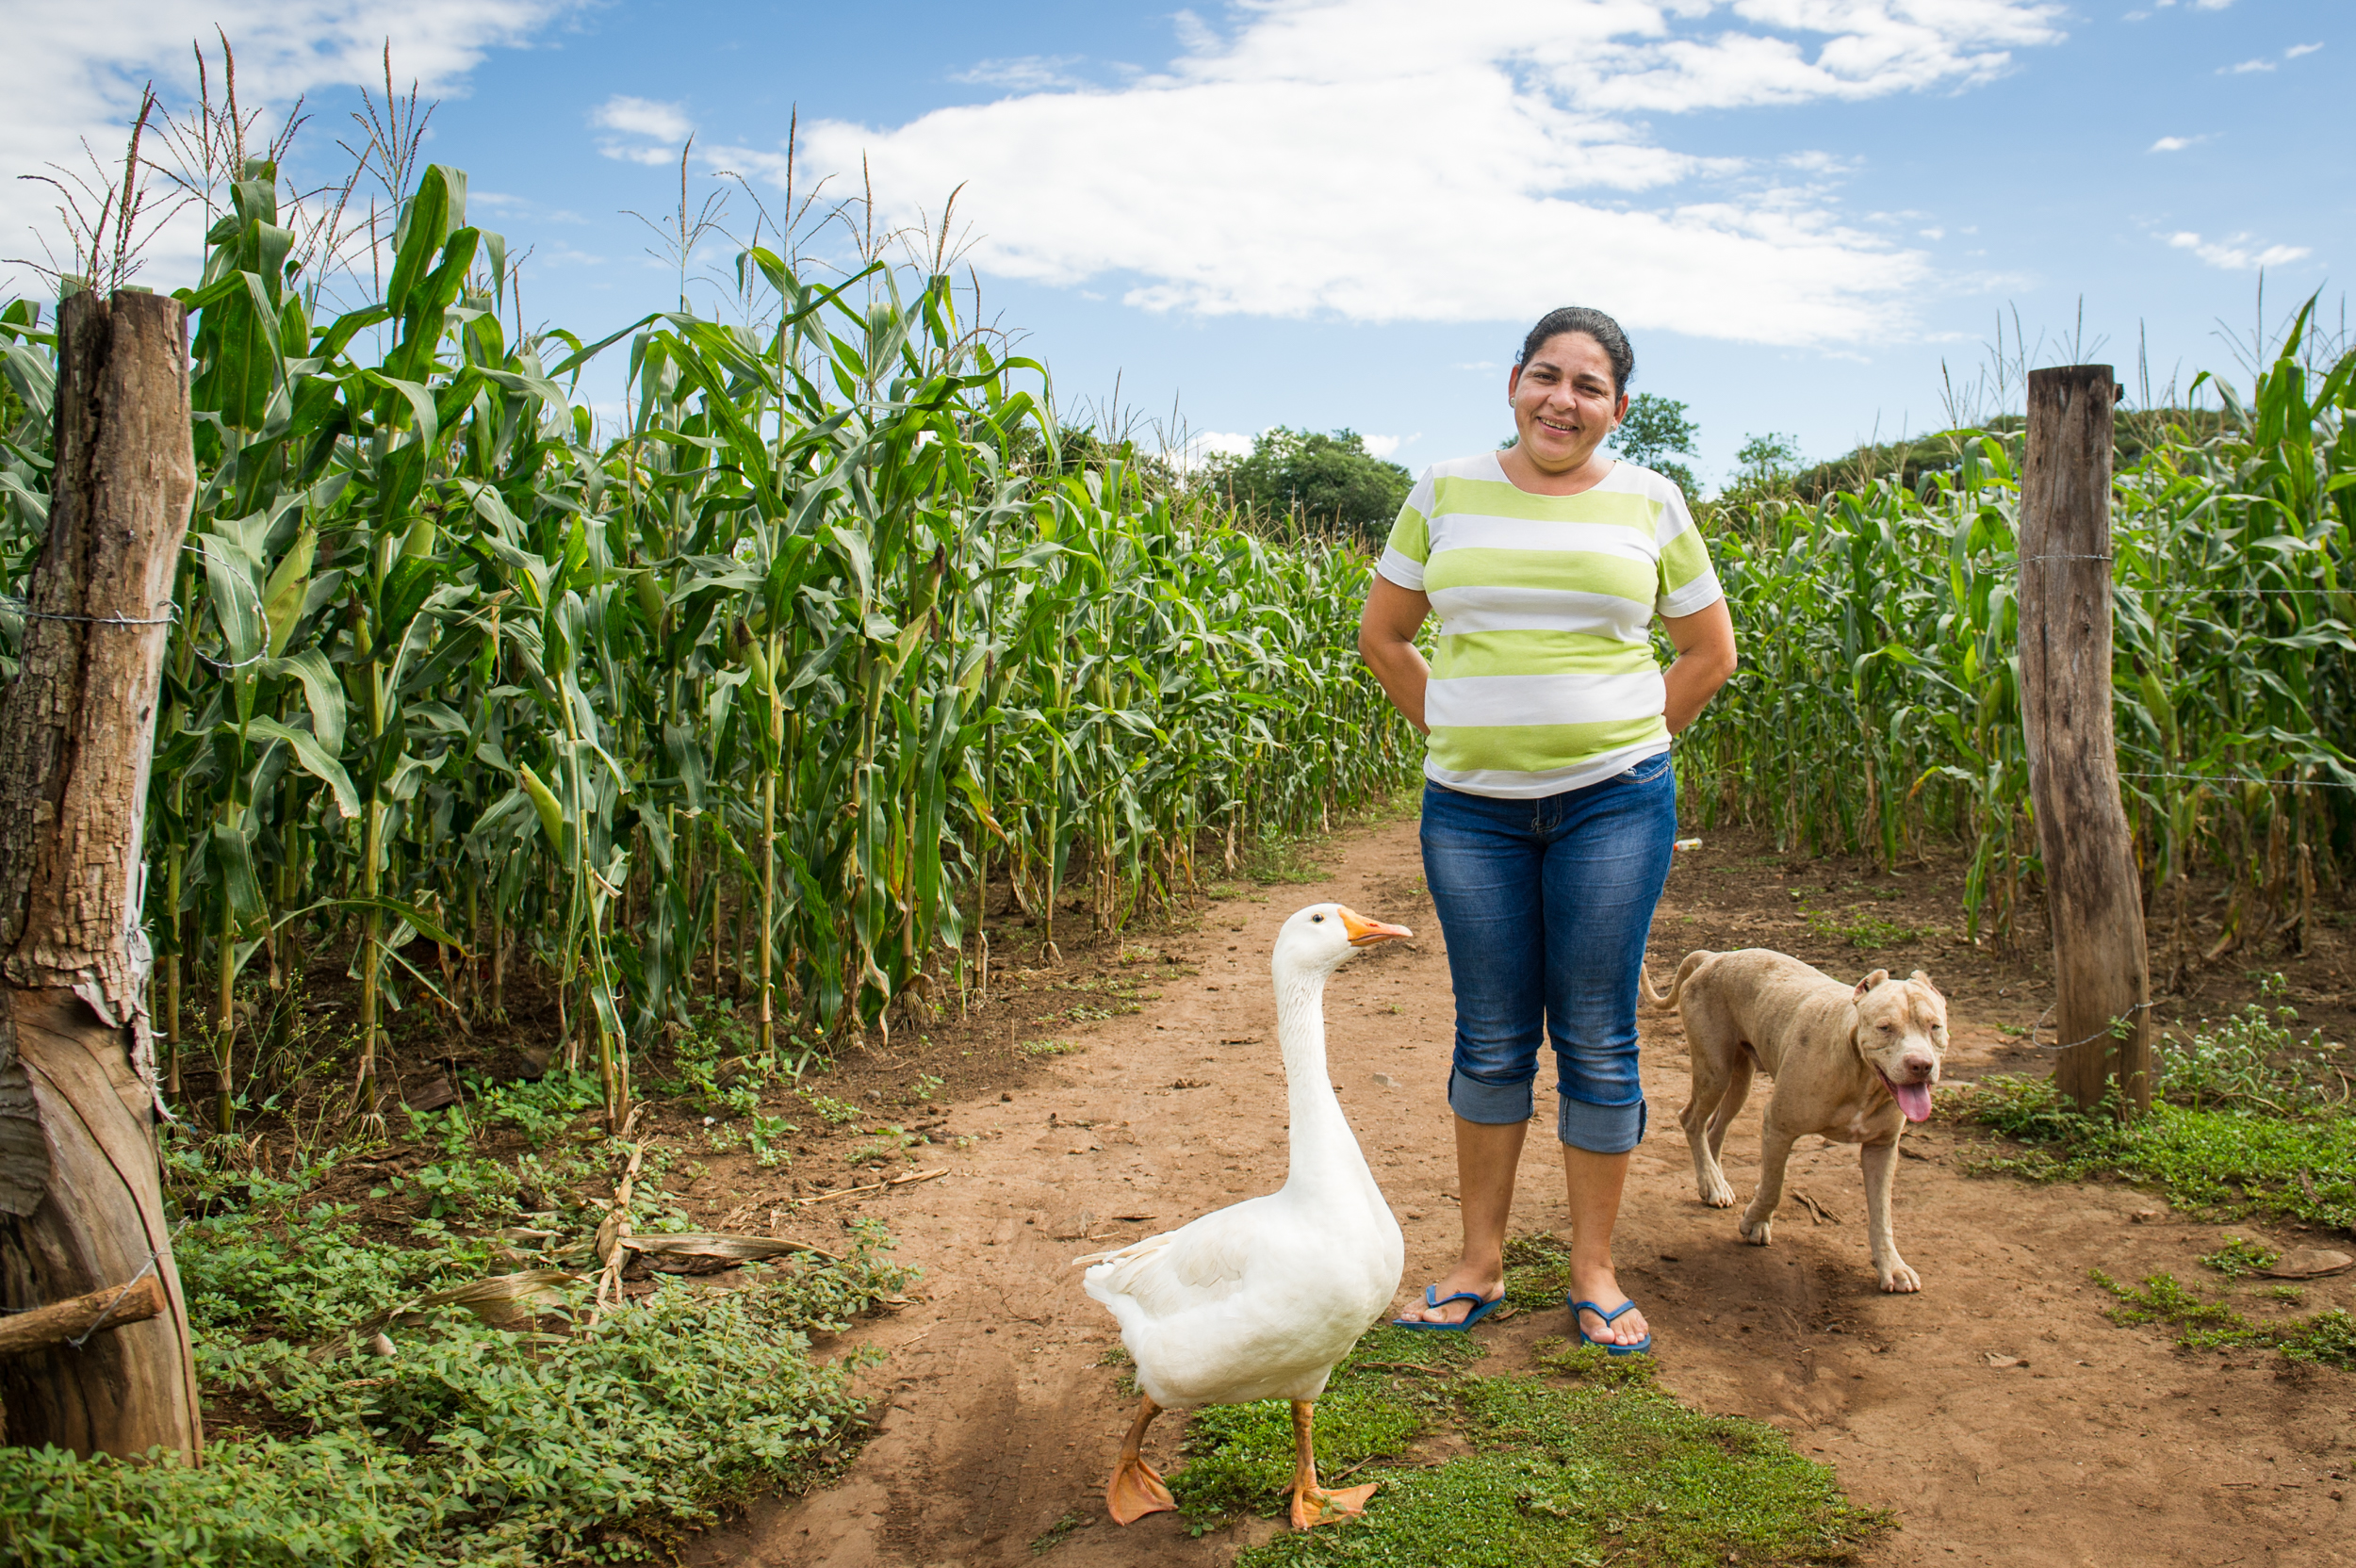 Blanquita the goose & Lorenzo the pit bull are best friends who work security on Yohana's vegetable farm.